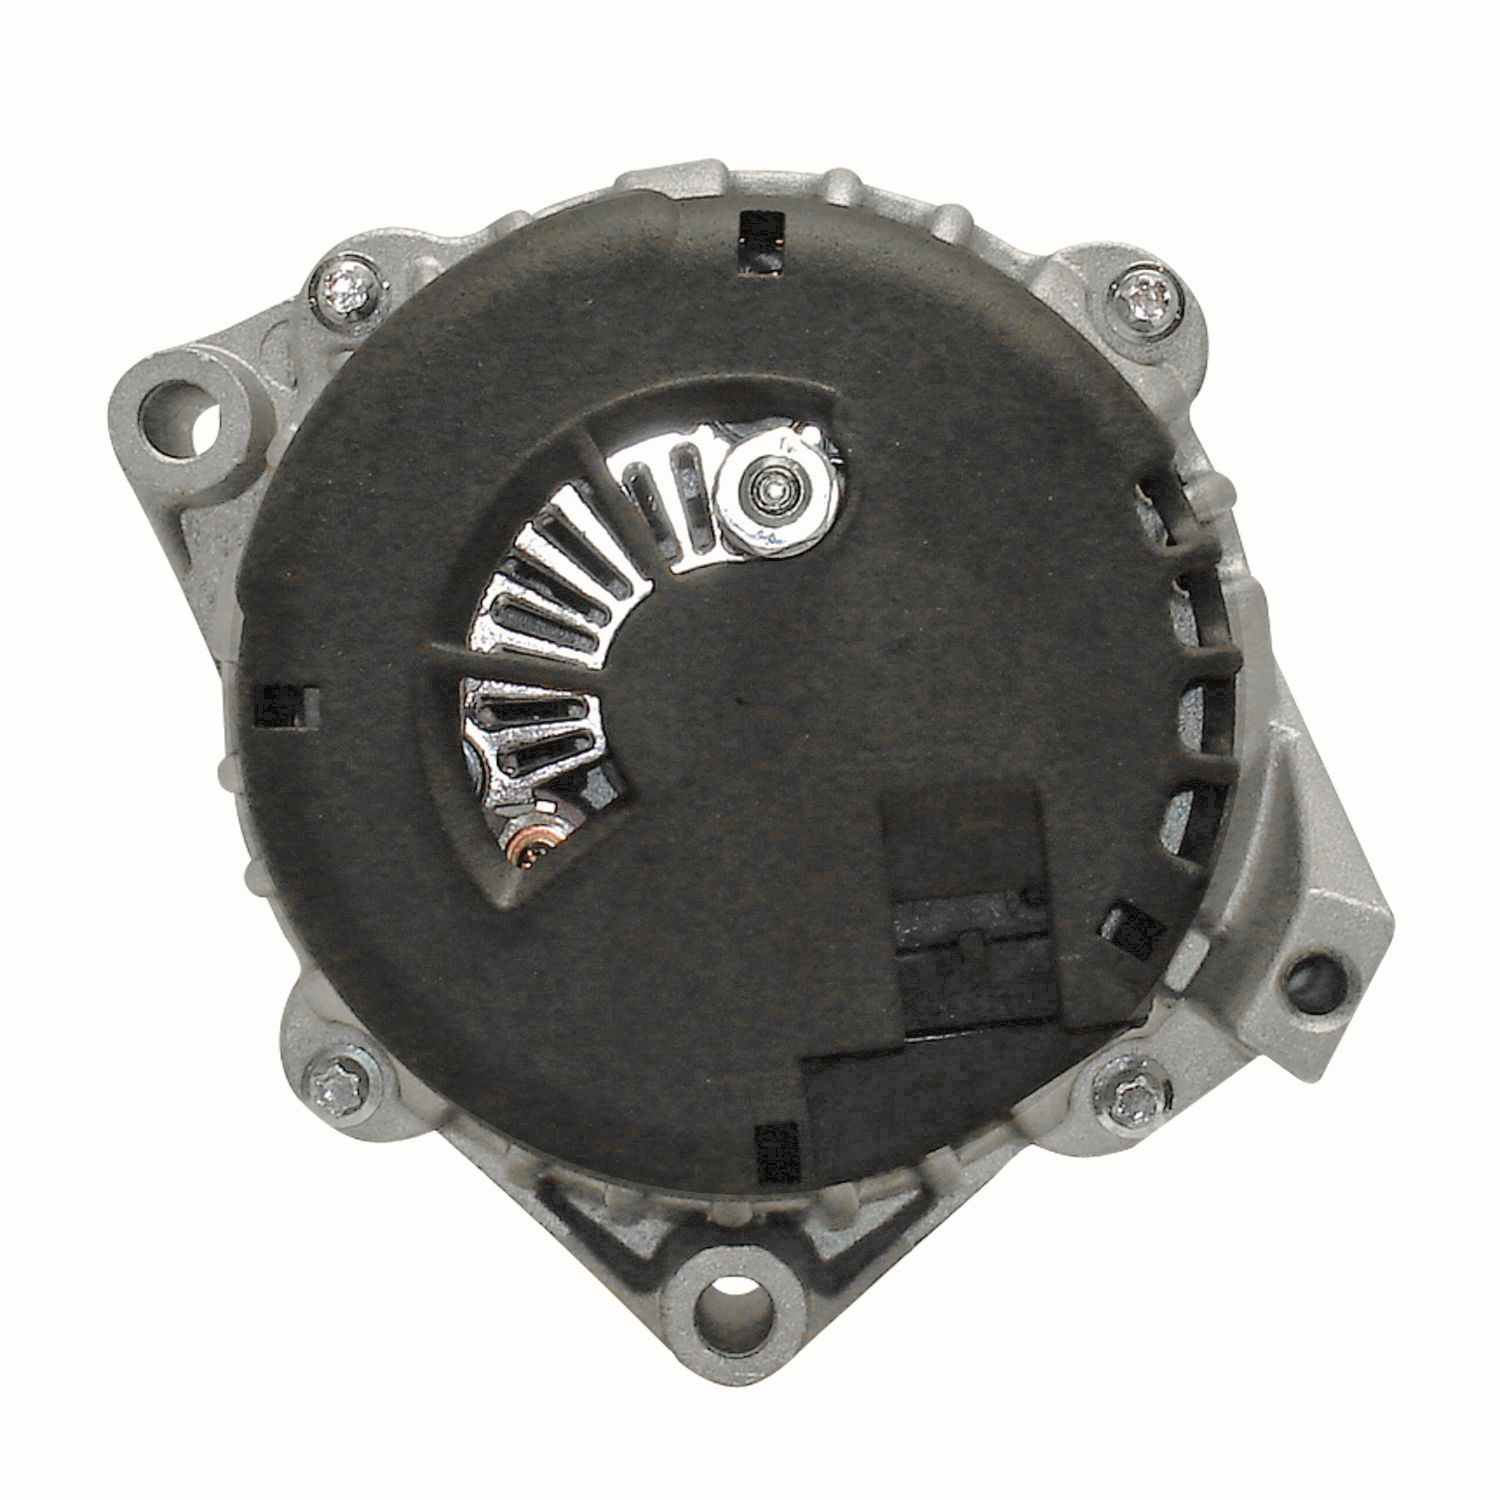 ACDELCO GOLD/PROFESSIONAL - Reman Alternator - DCC 334-2454A